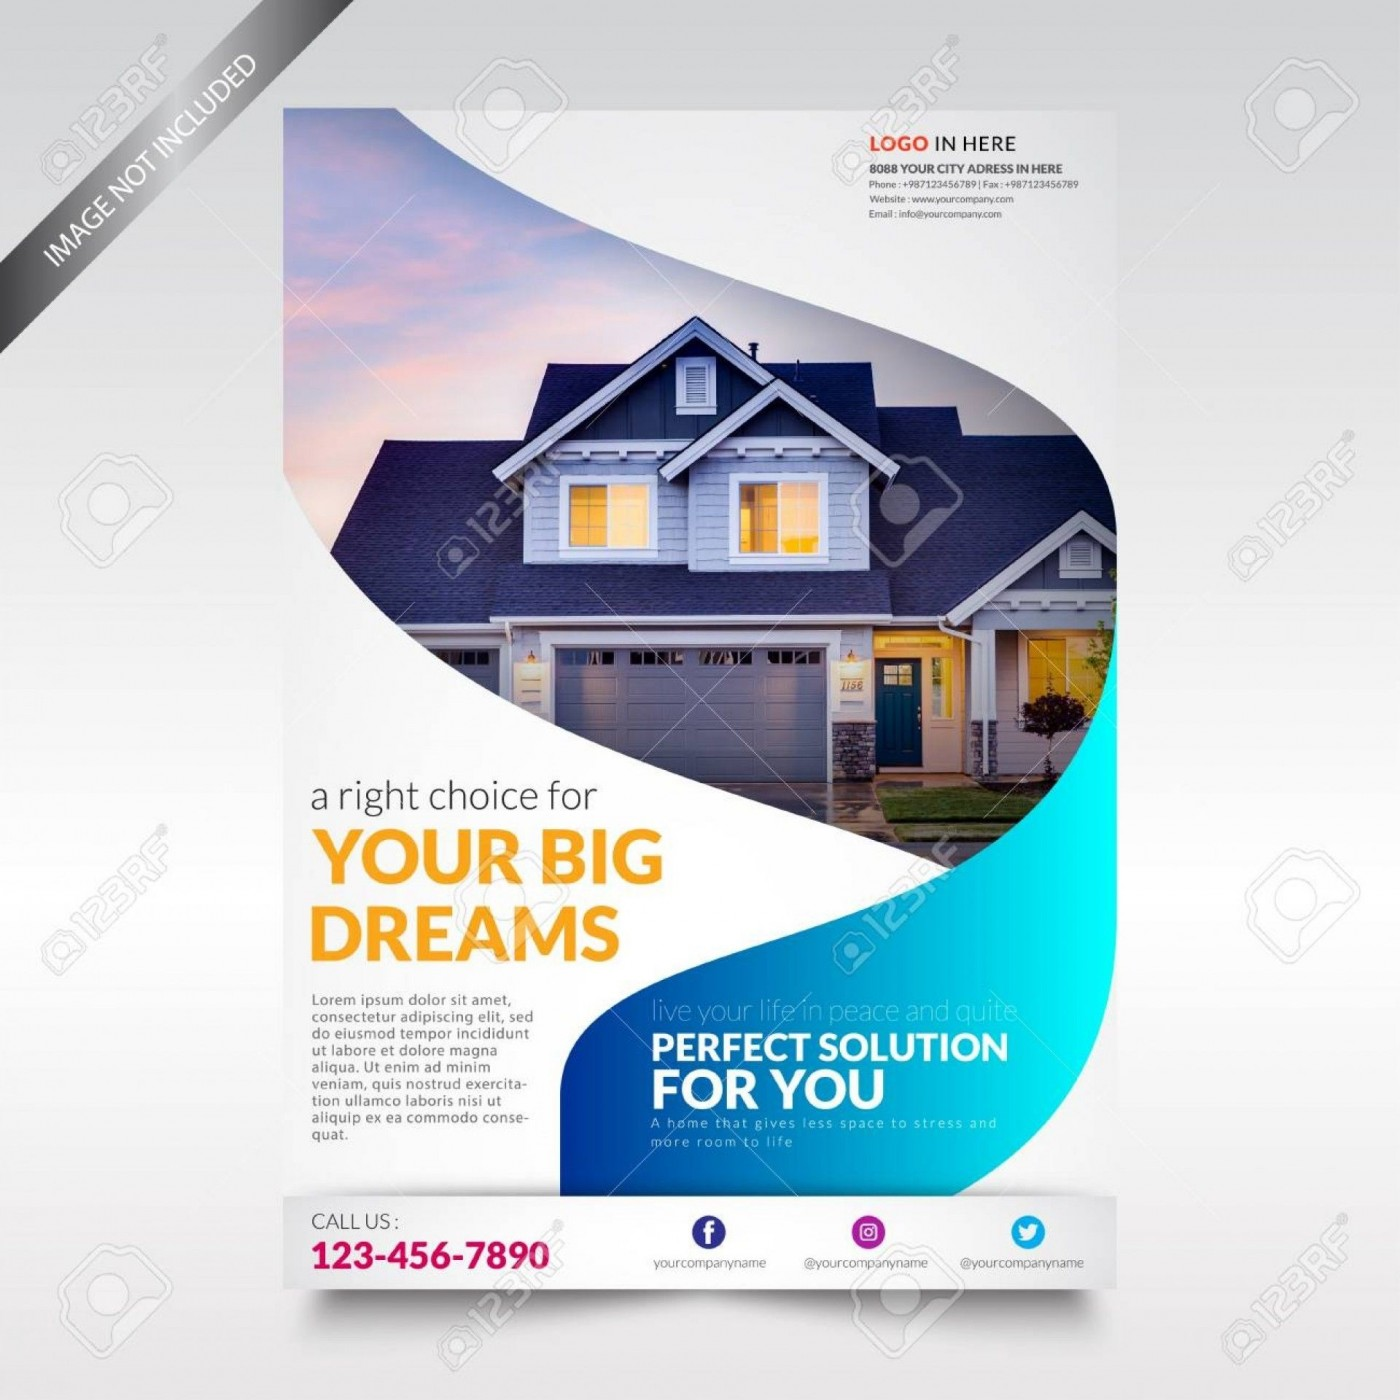 001 Unusual Real Estate Advertising Template Image  Facebook Ad Craigslist1400